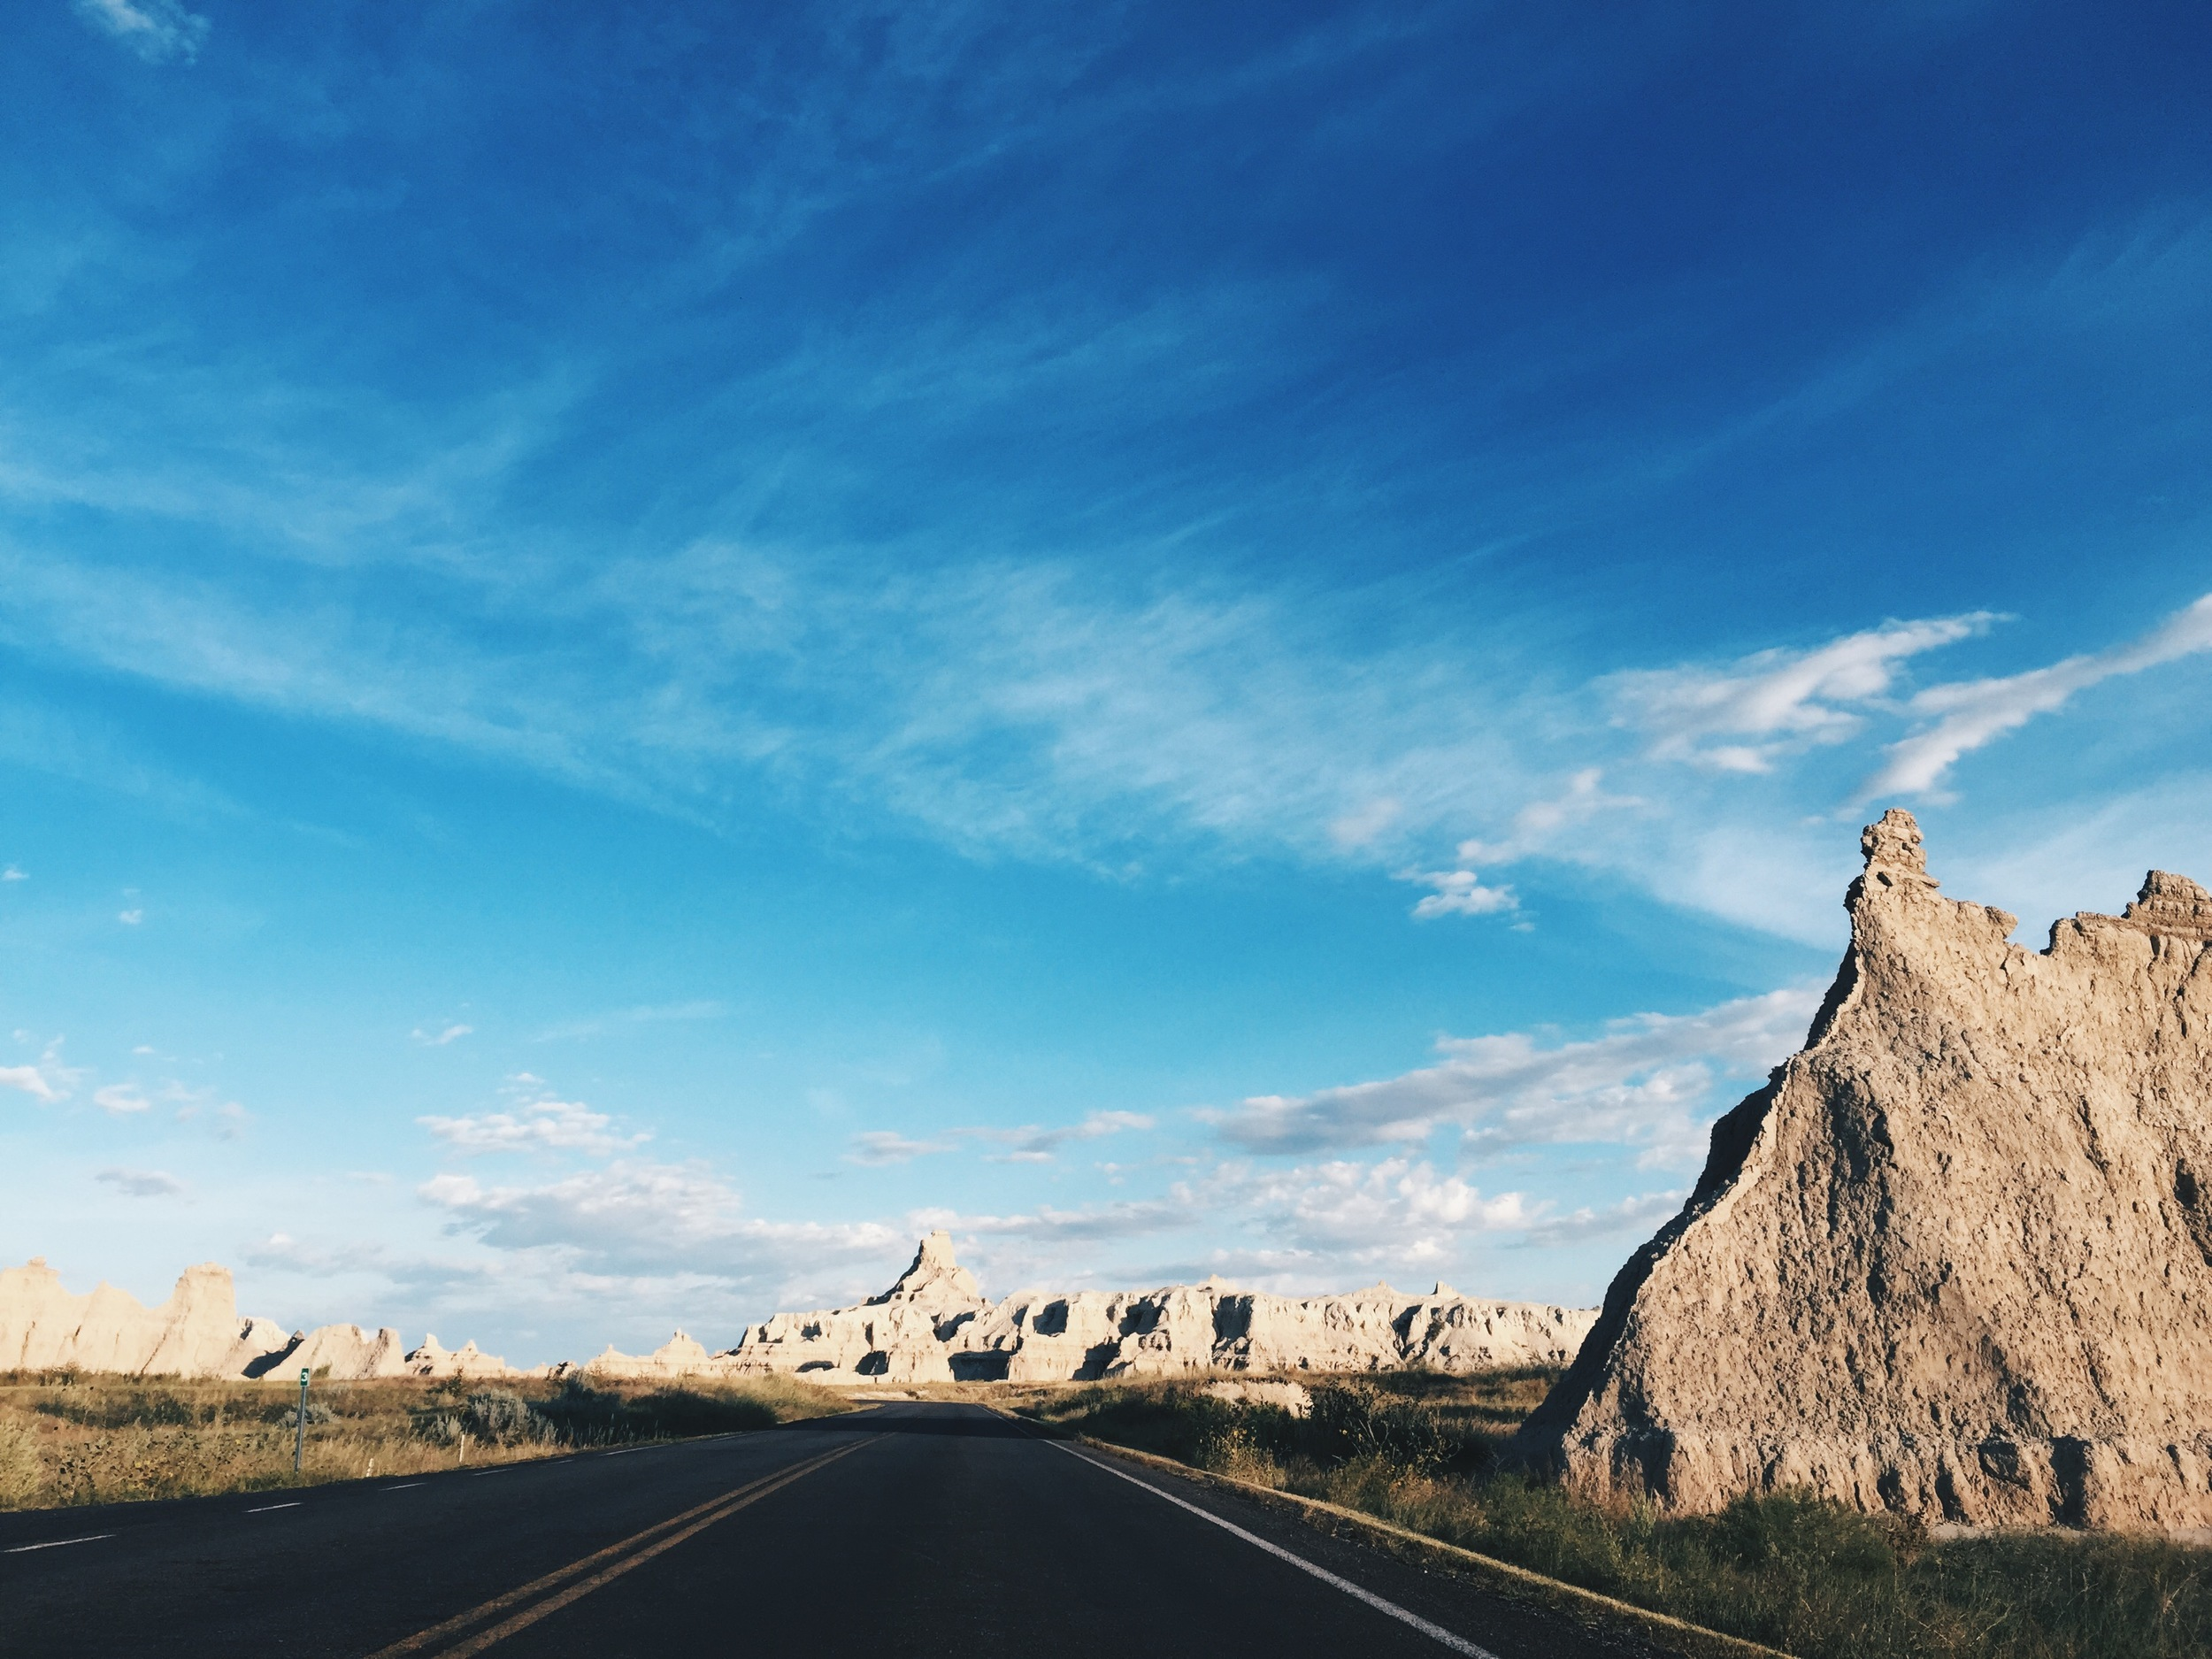 A SOLO TRIP ACROSS THE U.S. | Heather Day